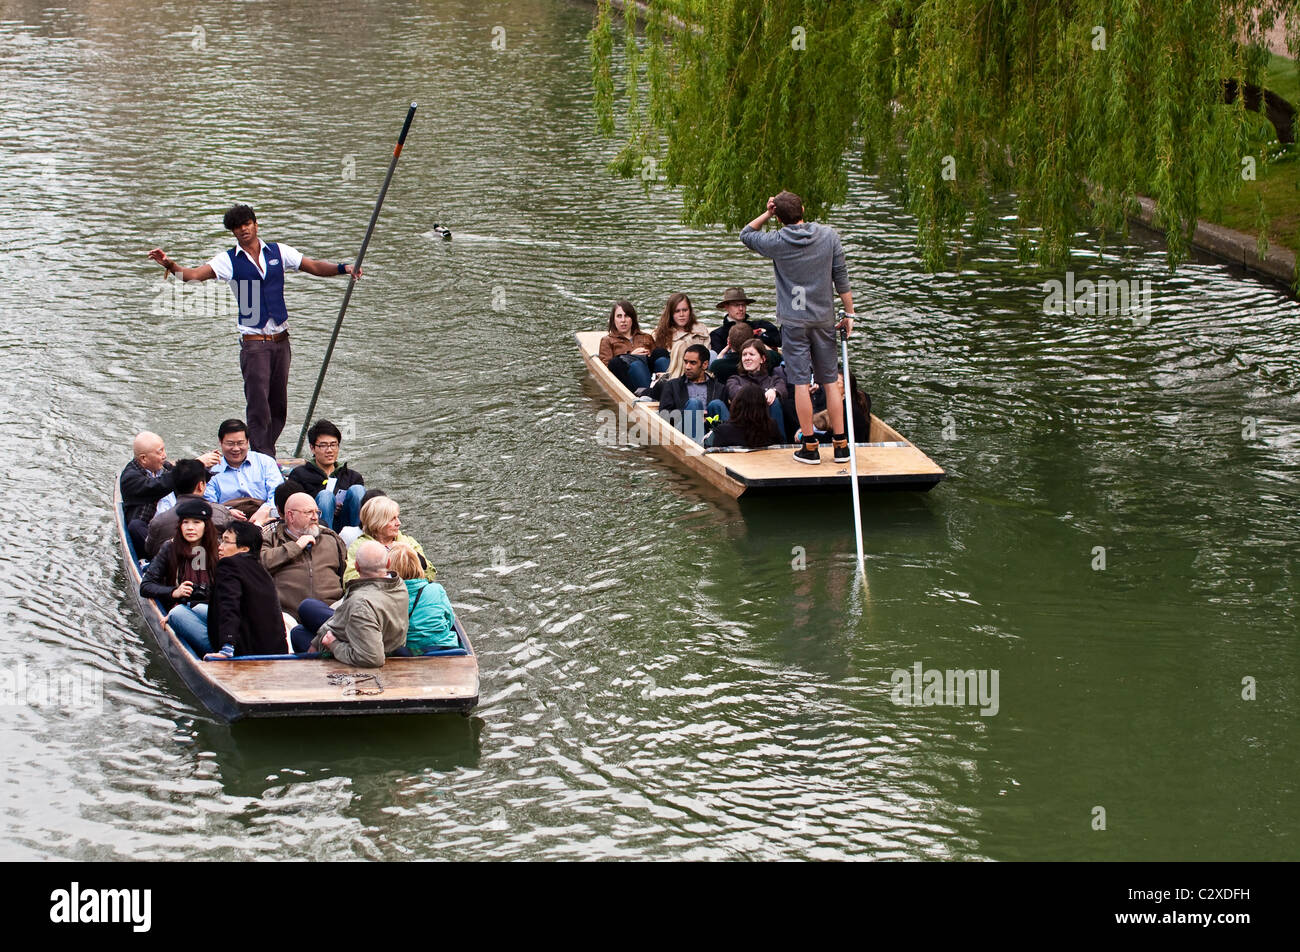 Punting on the River Cam - Stock Image